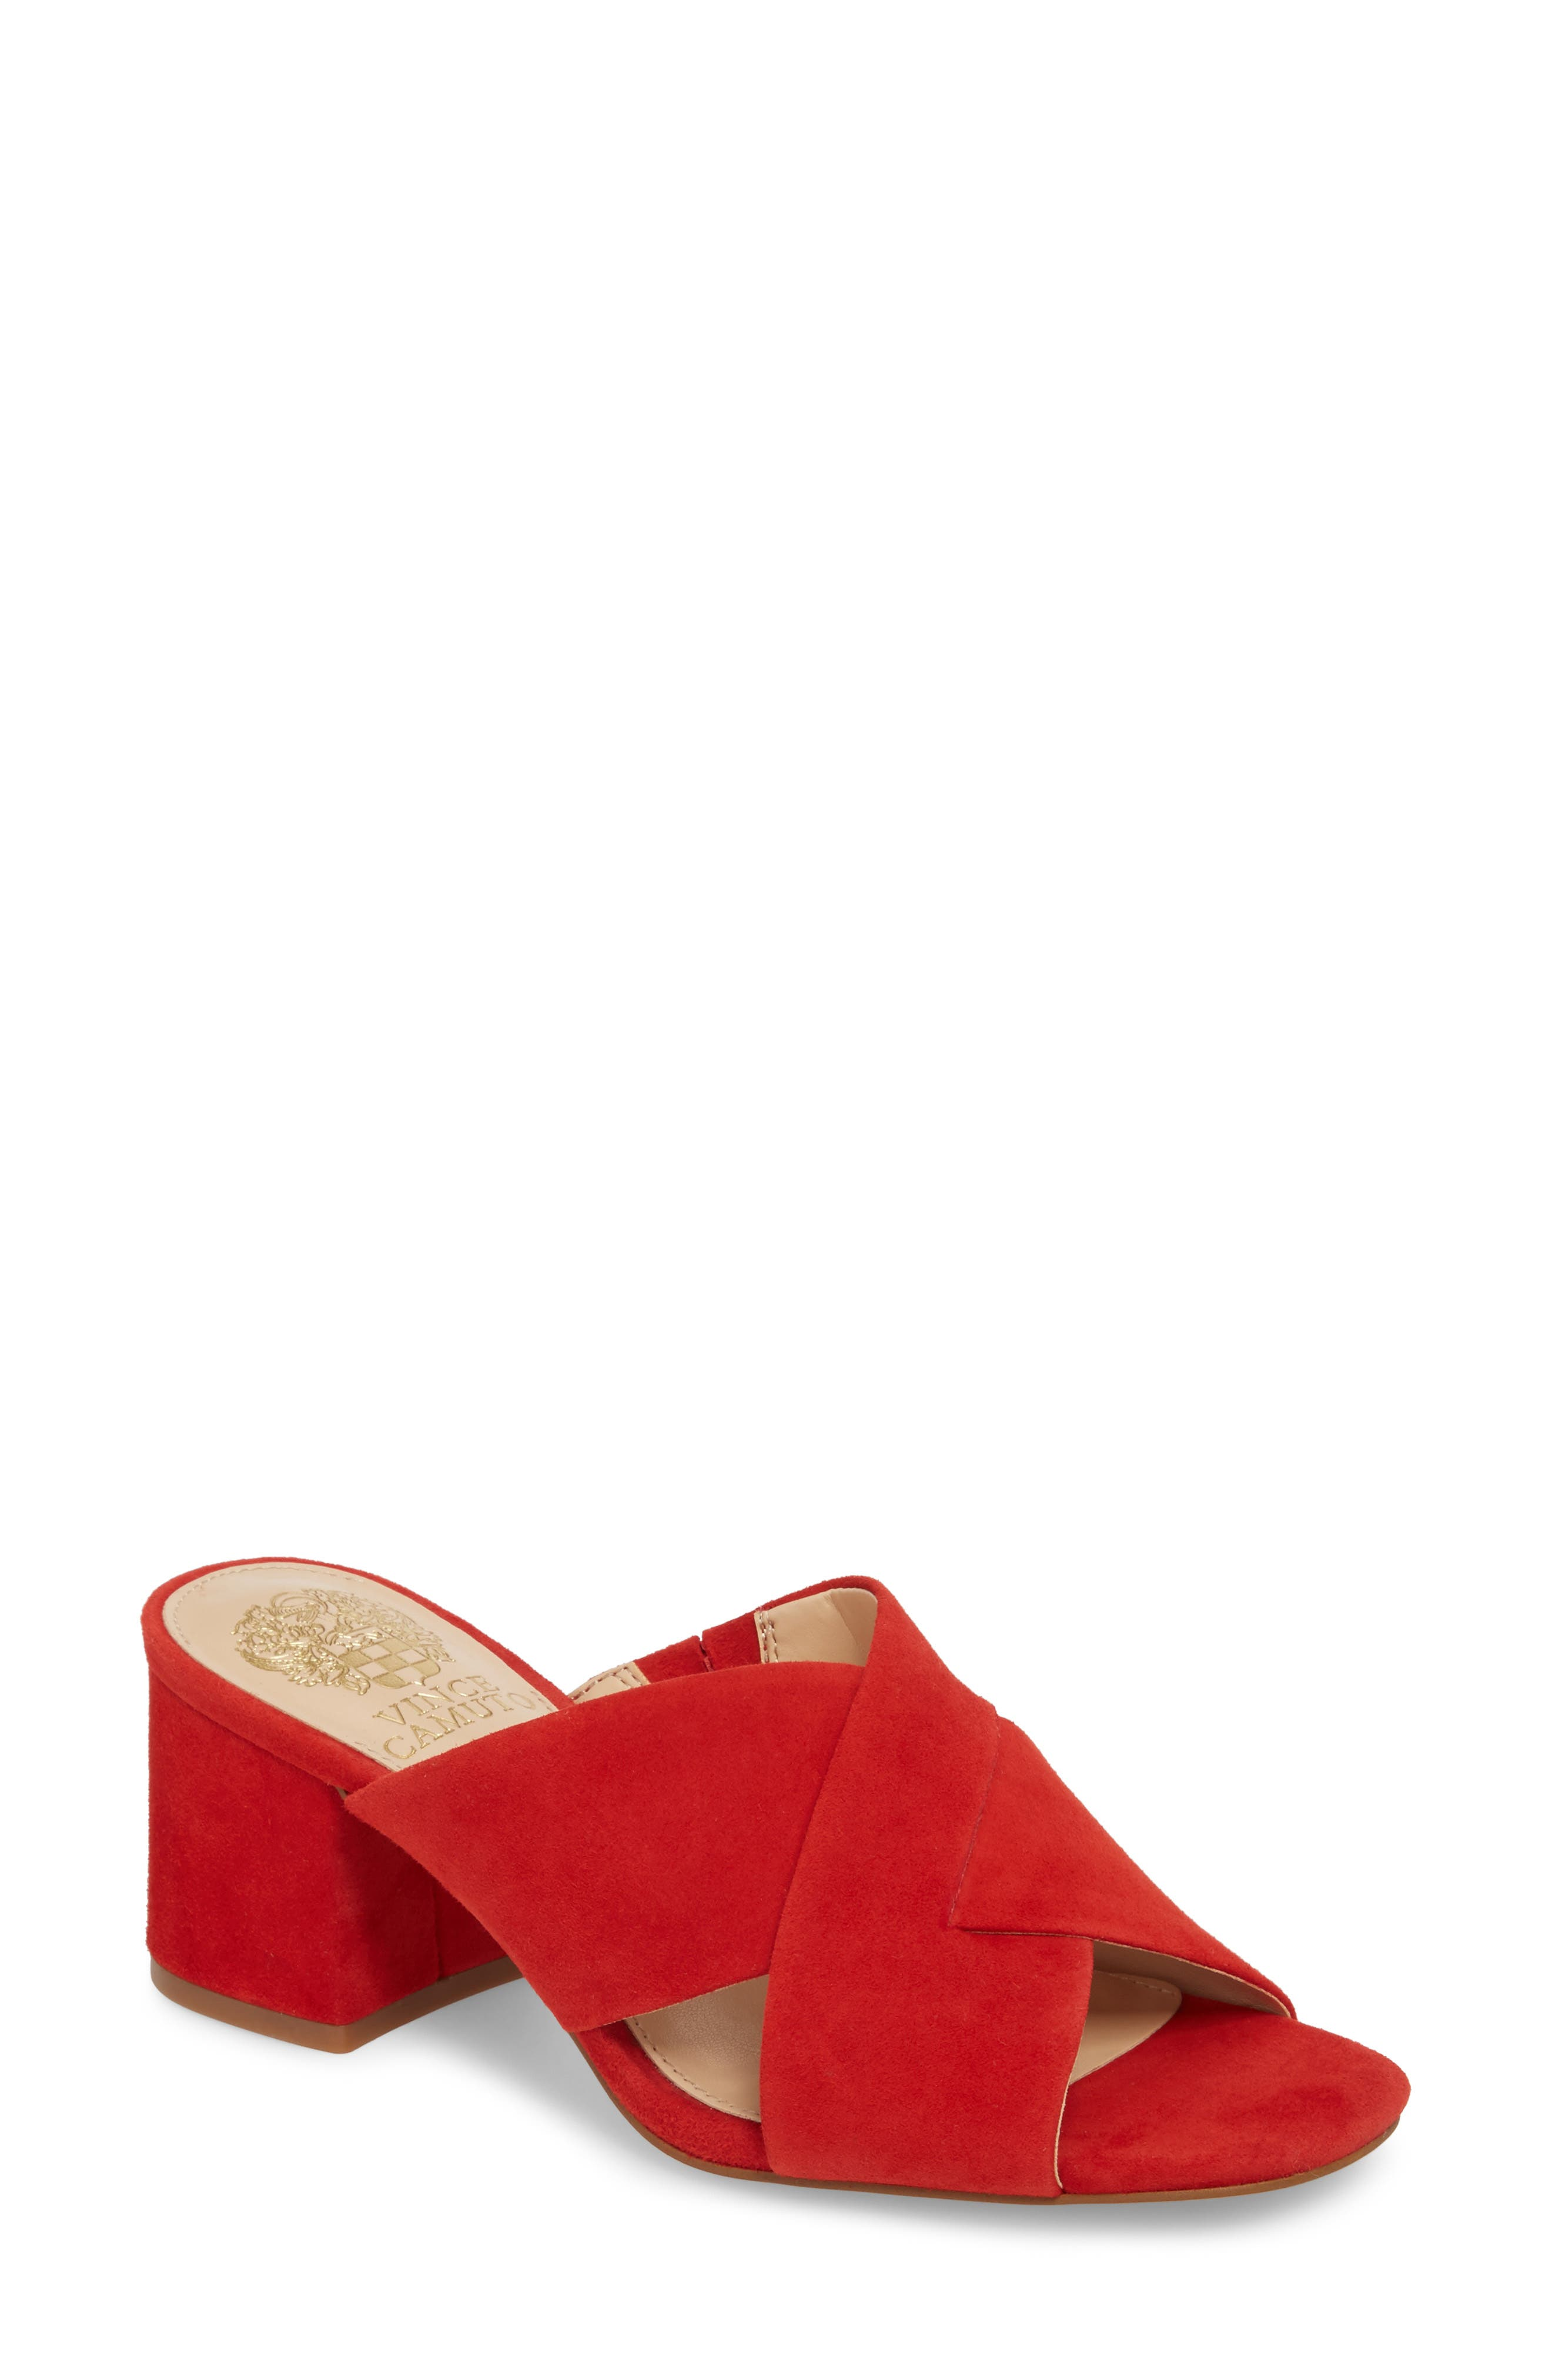 Stania Sandal,                         Main,                         color, RED HOT RIO SUEDE